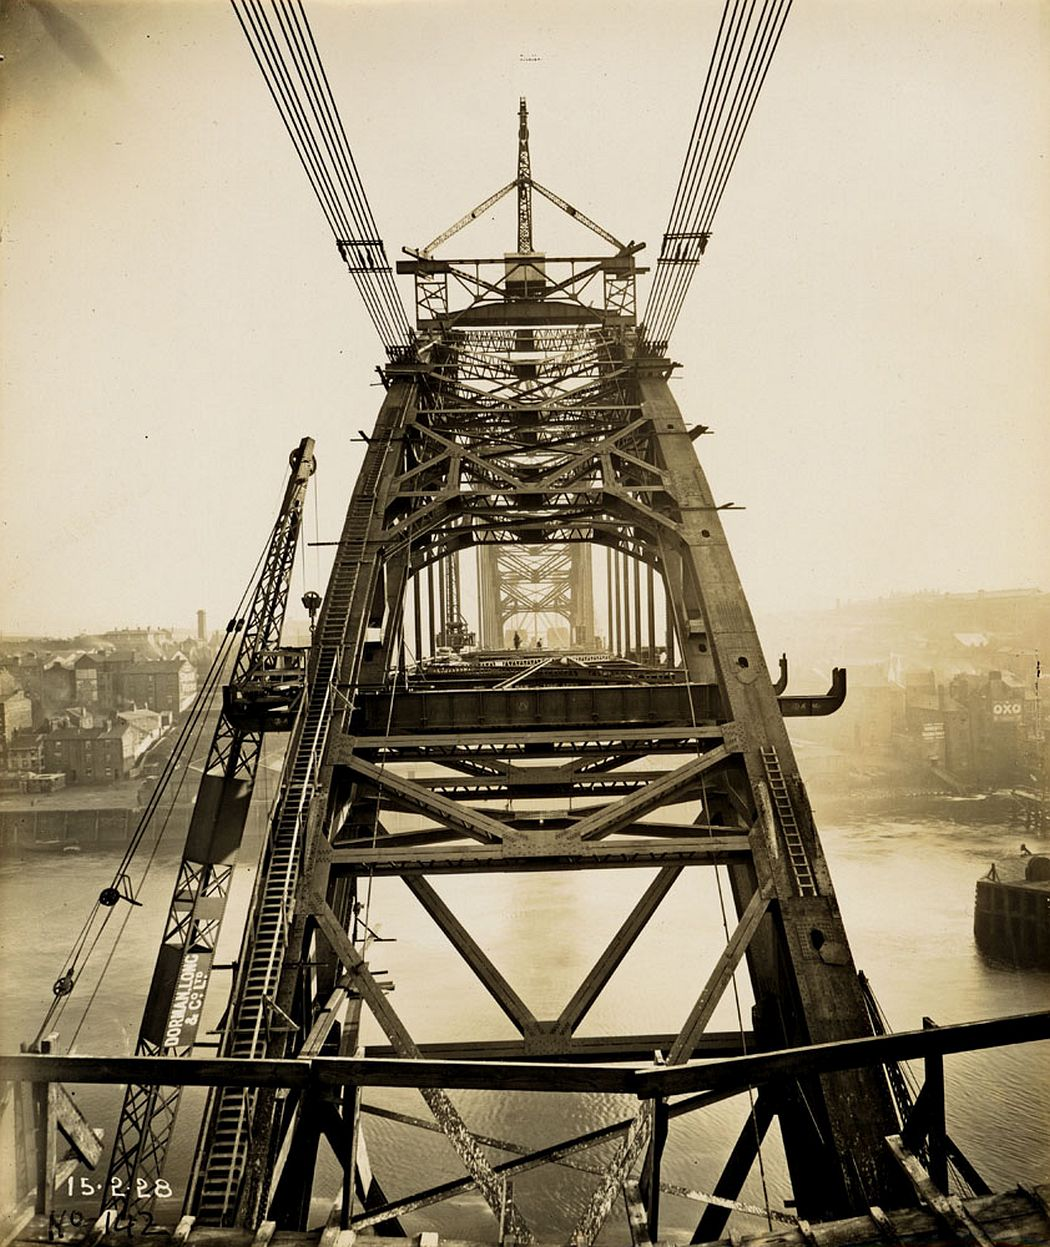 View of the Tyne Bridge captured from the Newcastle side during its construction on 15 February 1928. This shot shows very clearly the cross-bracing on the arch.